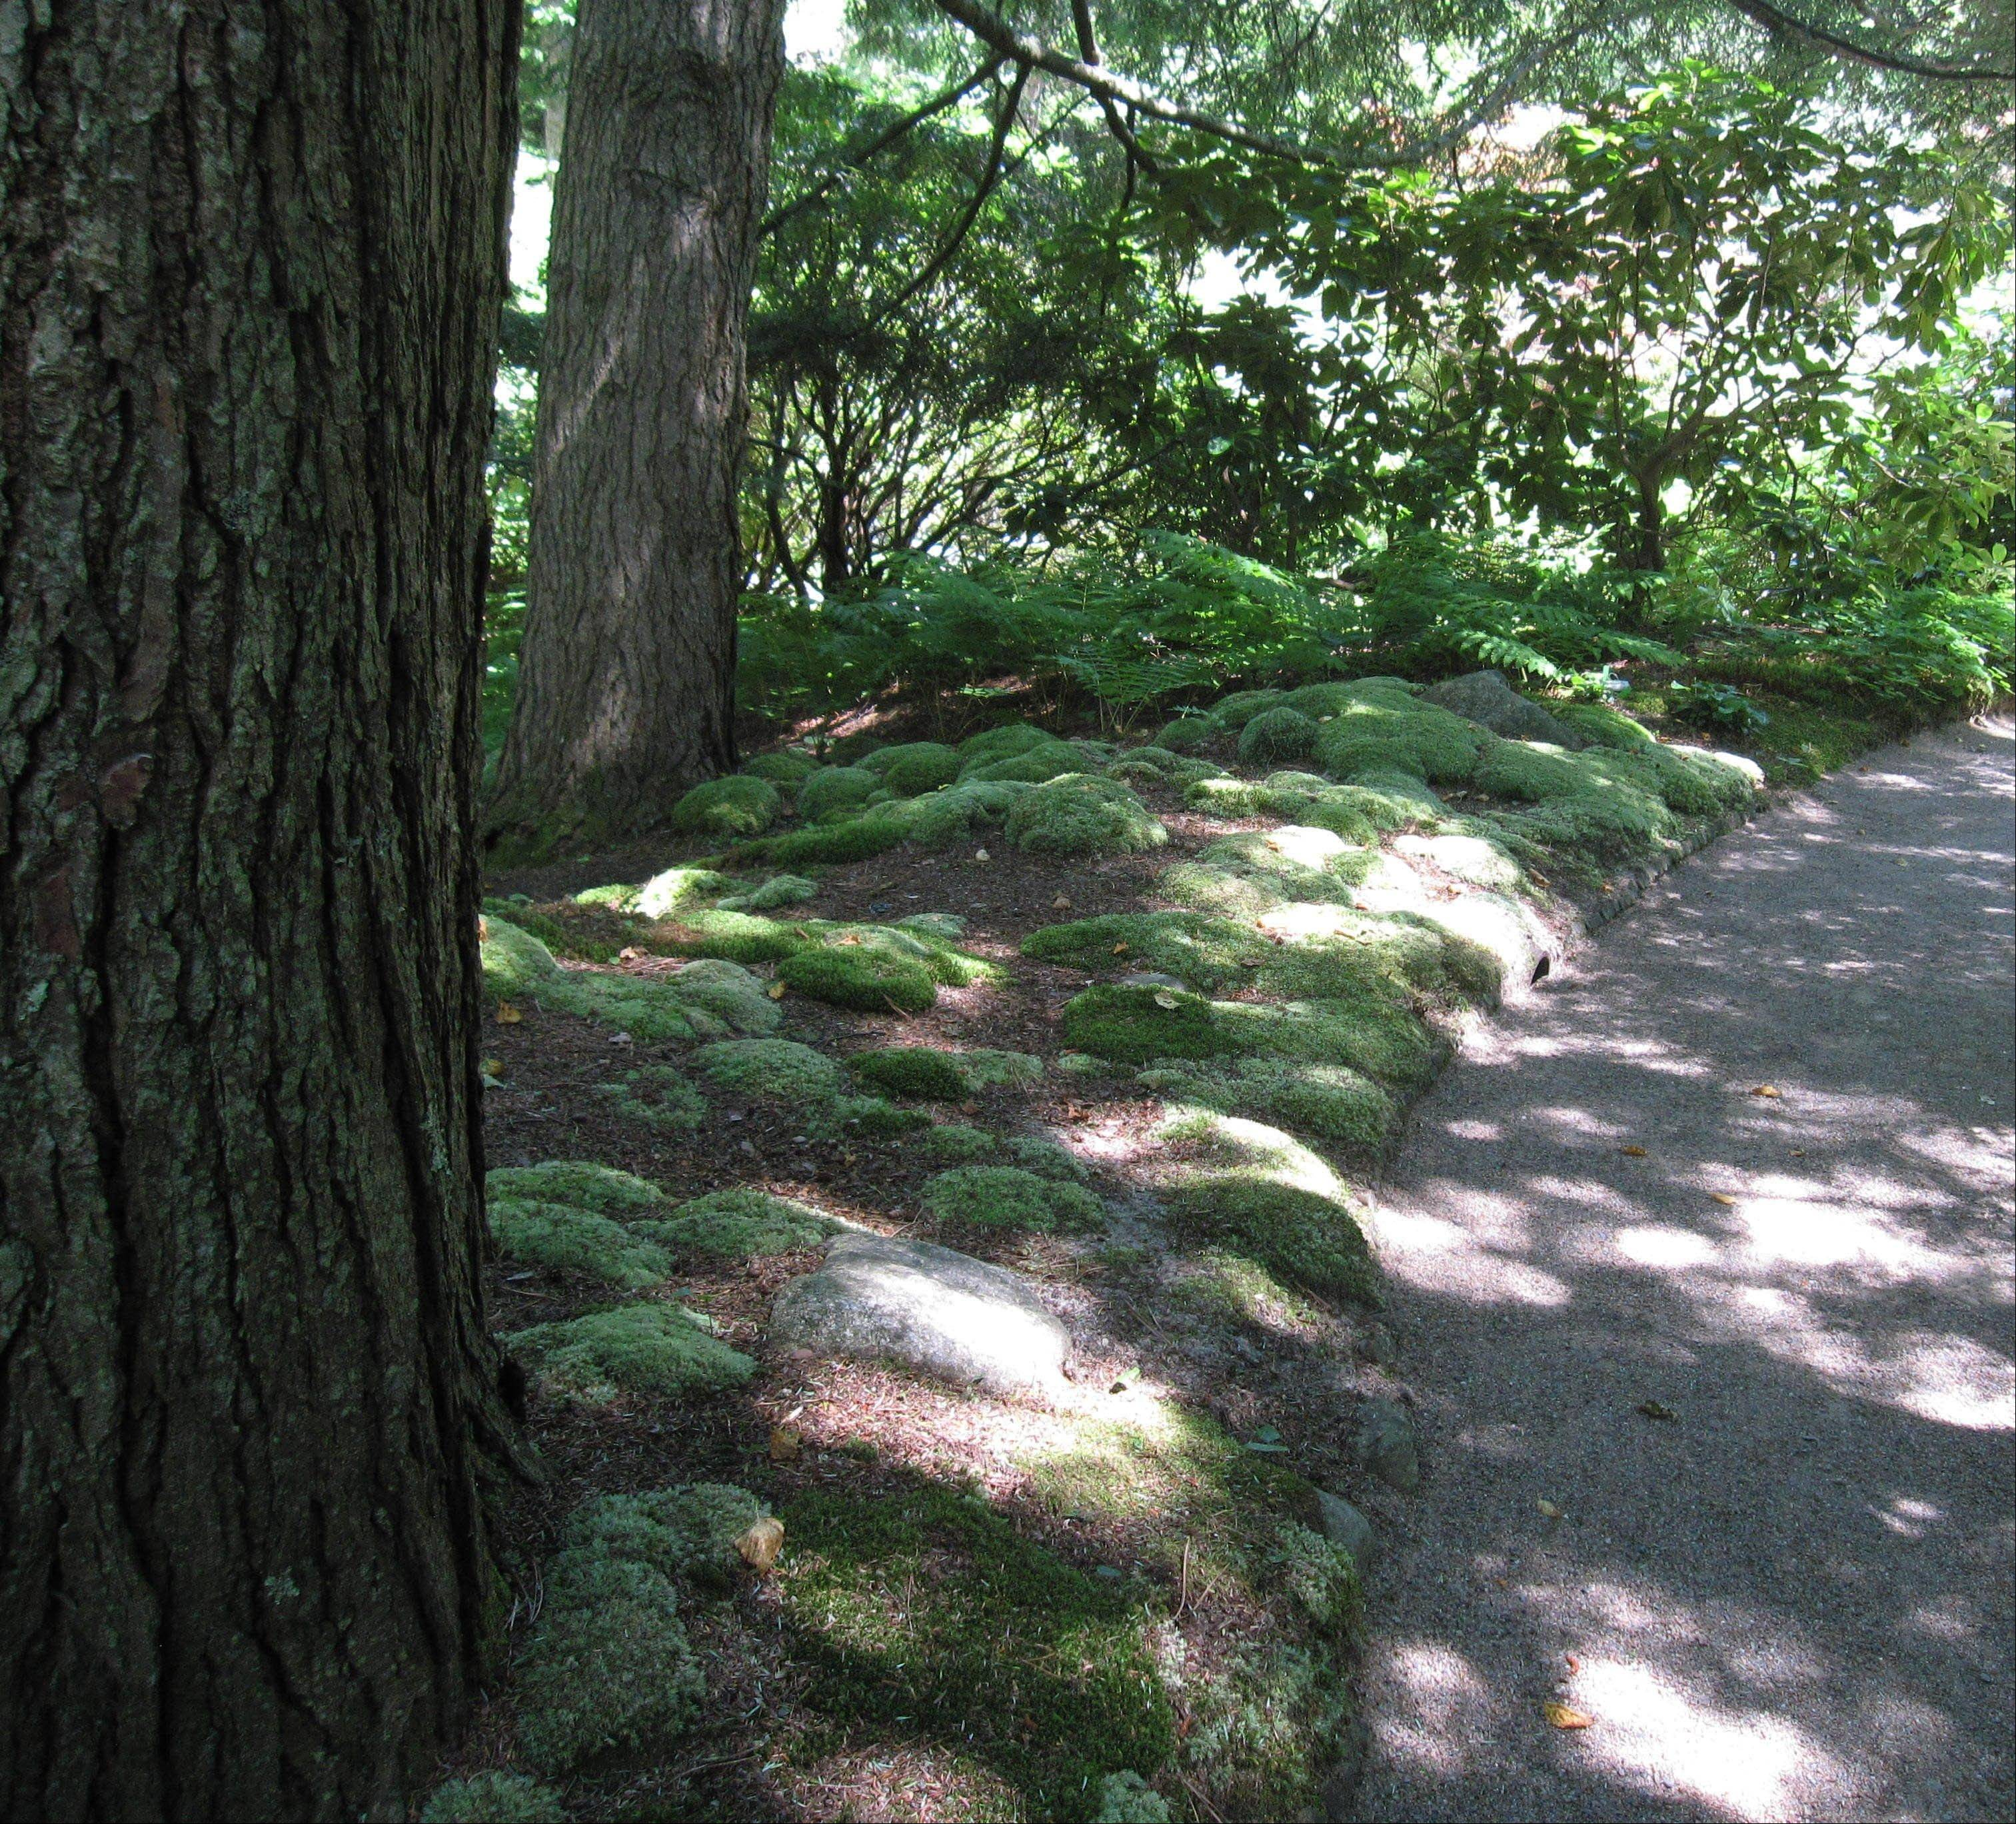 A wooded path is lined with moss and ferns at the Asticou Azalea Garden in Northeast Harbor, Maine.